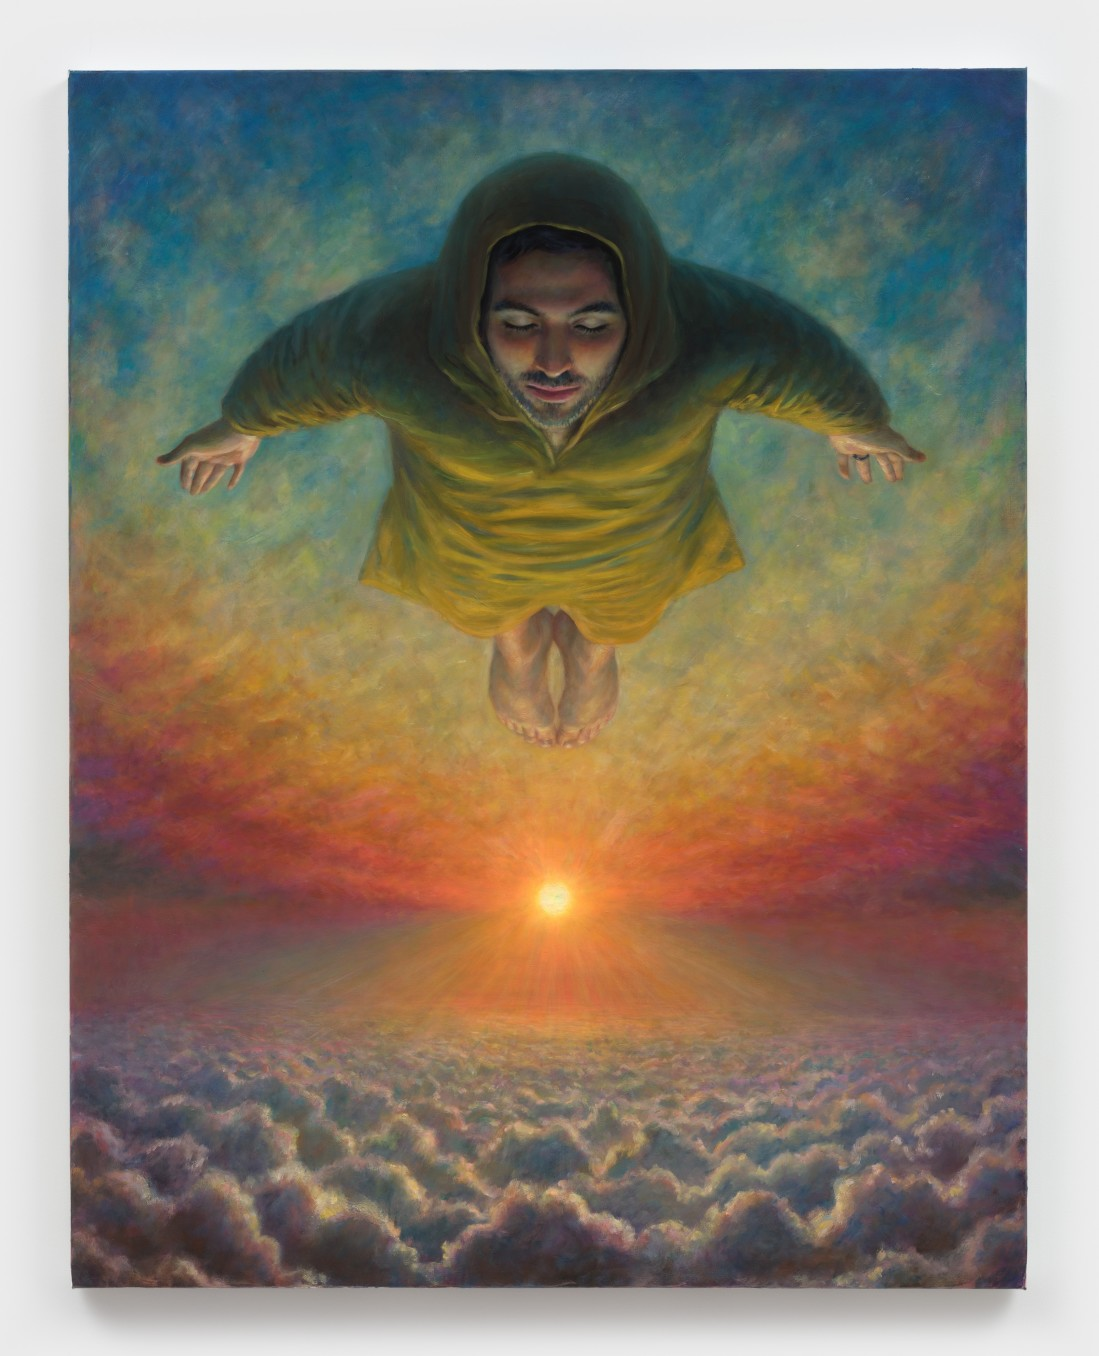 TM Davy, flying dream (self and sun), 2020, Oil on linen, 116.8 x 91.4 cm, 46 x 36 in